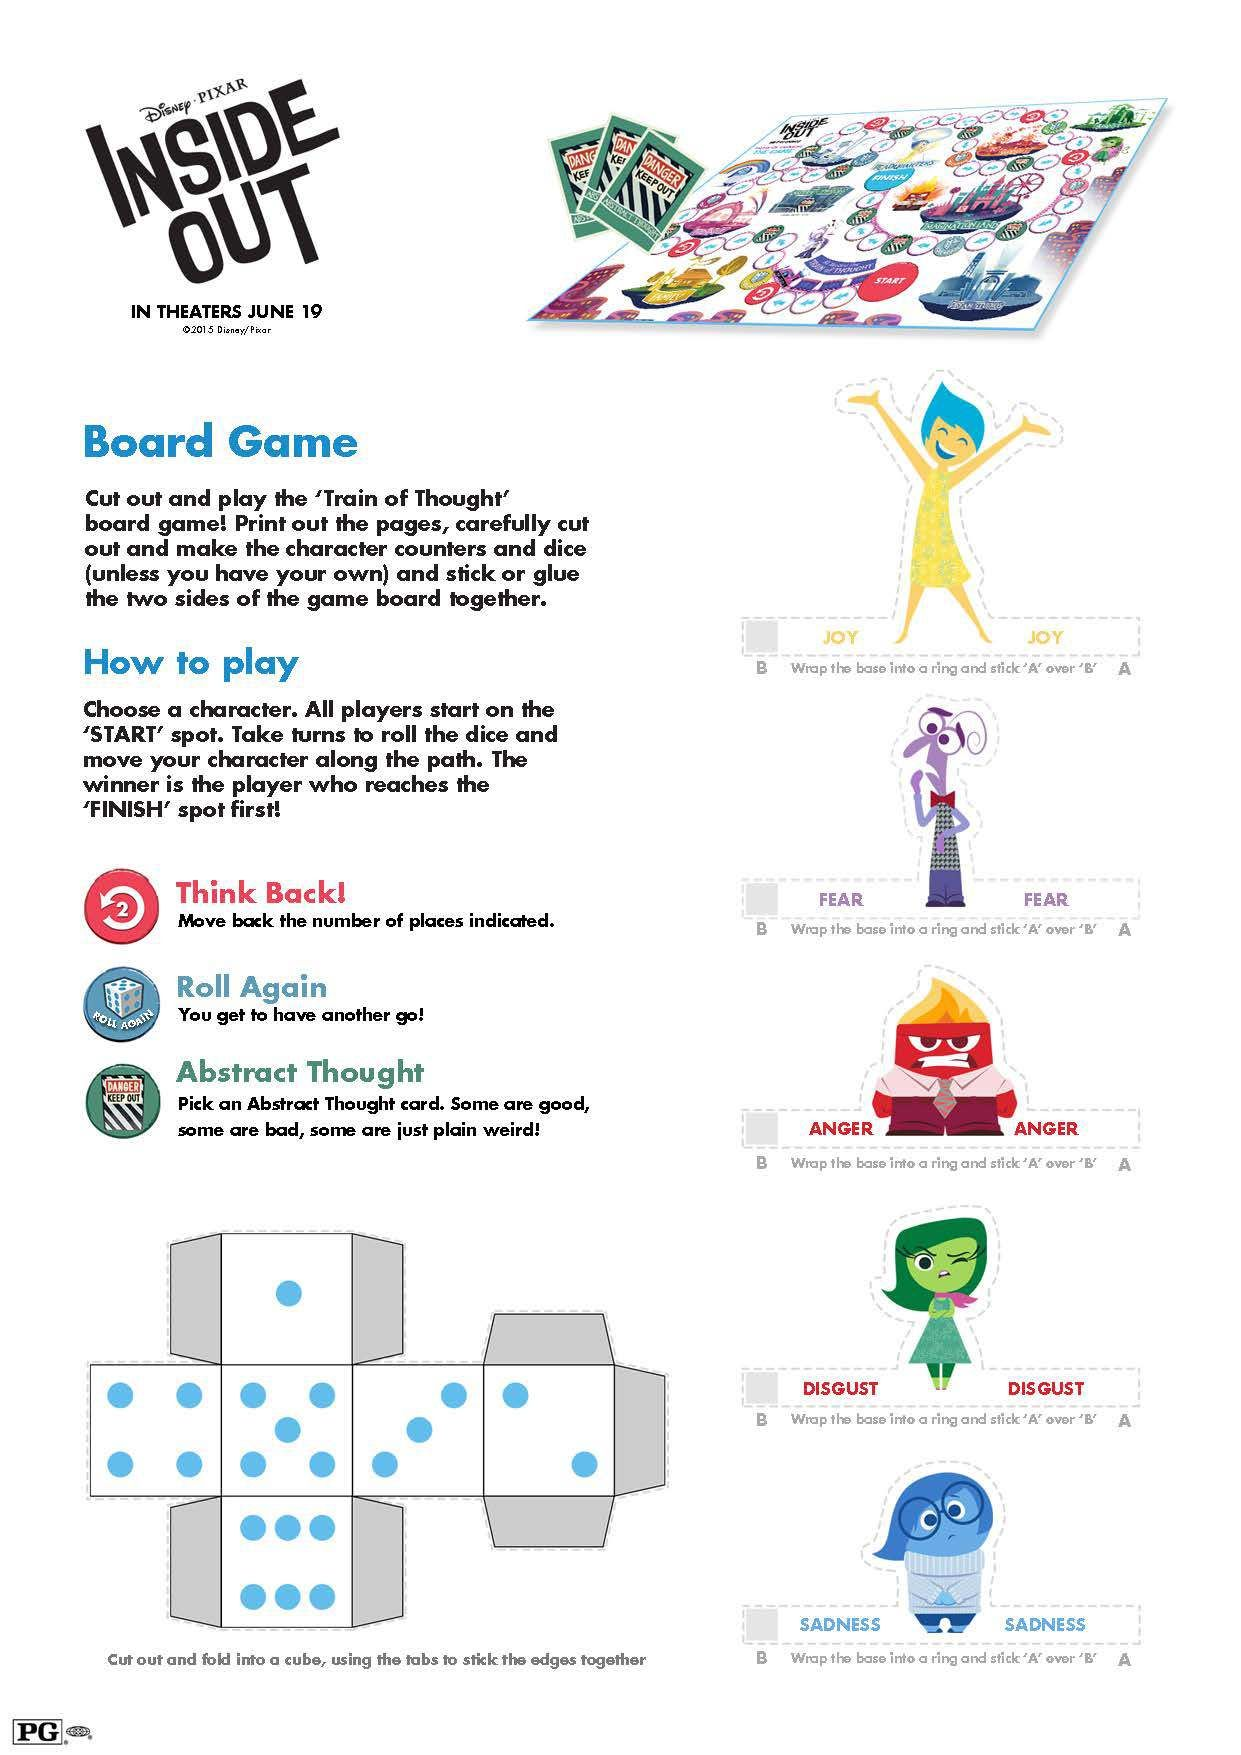 Free Printable Inside Out Board Game And Activities For Kids Insideoutevent